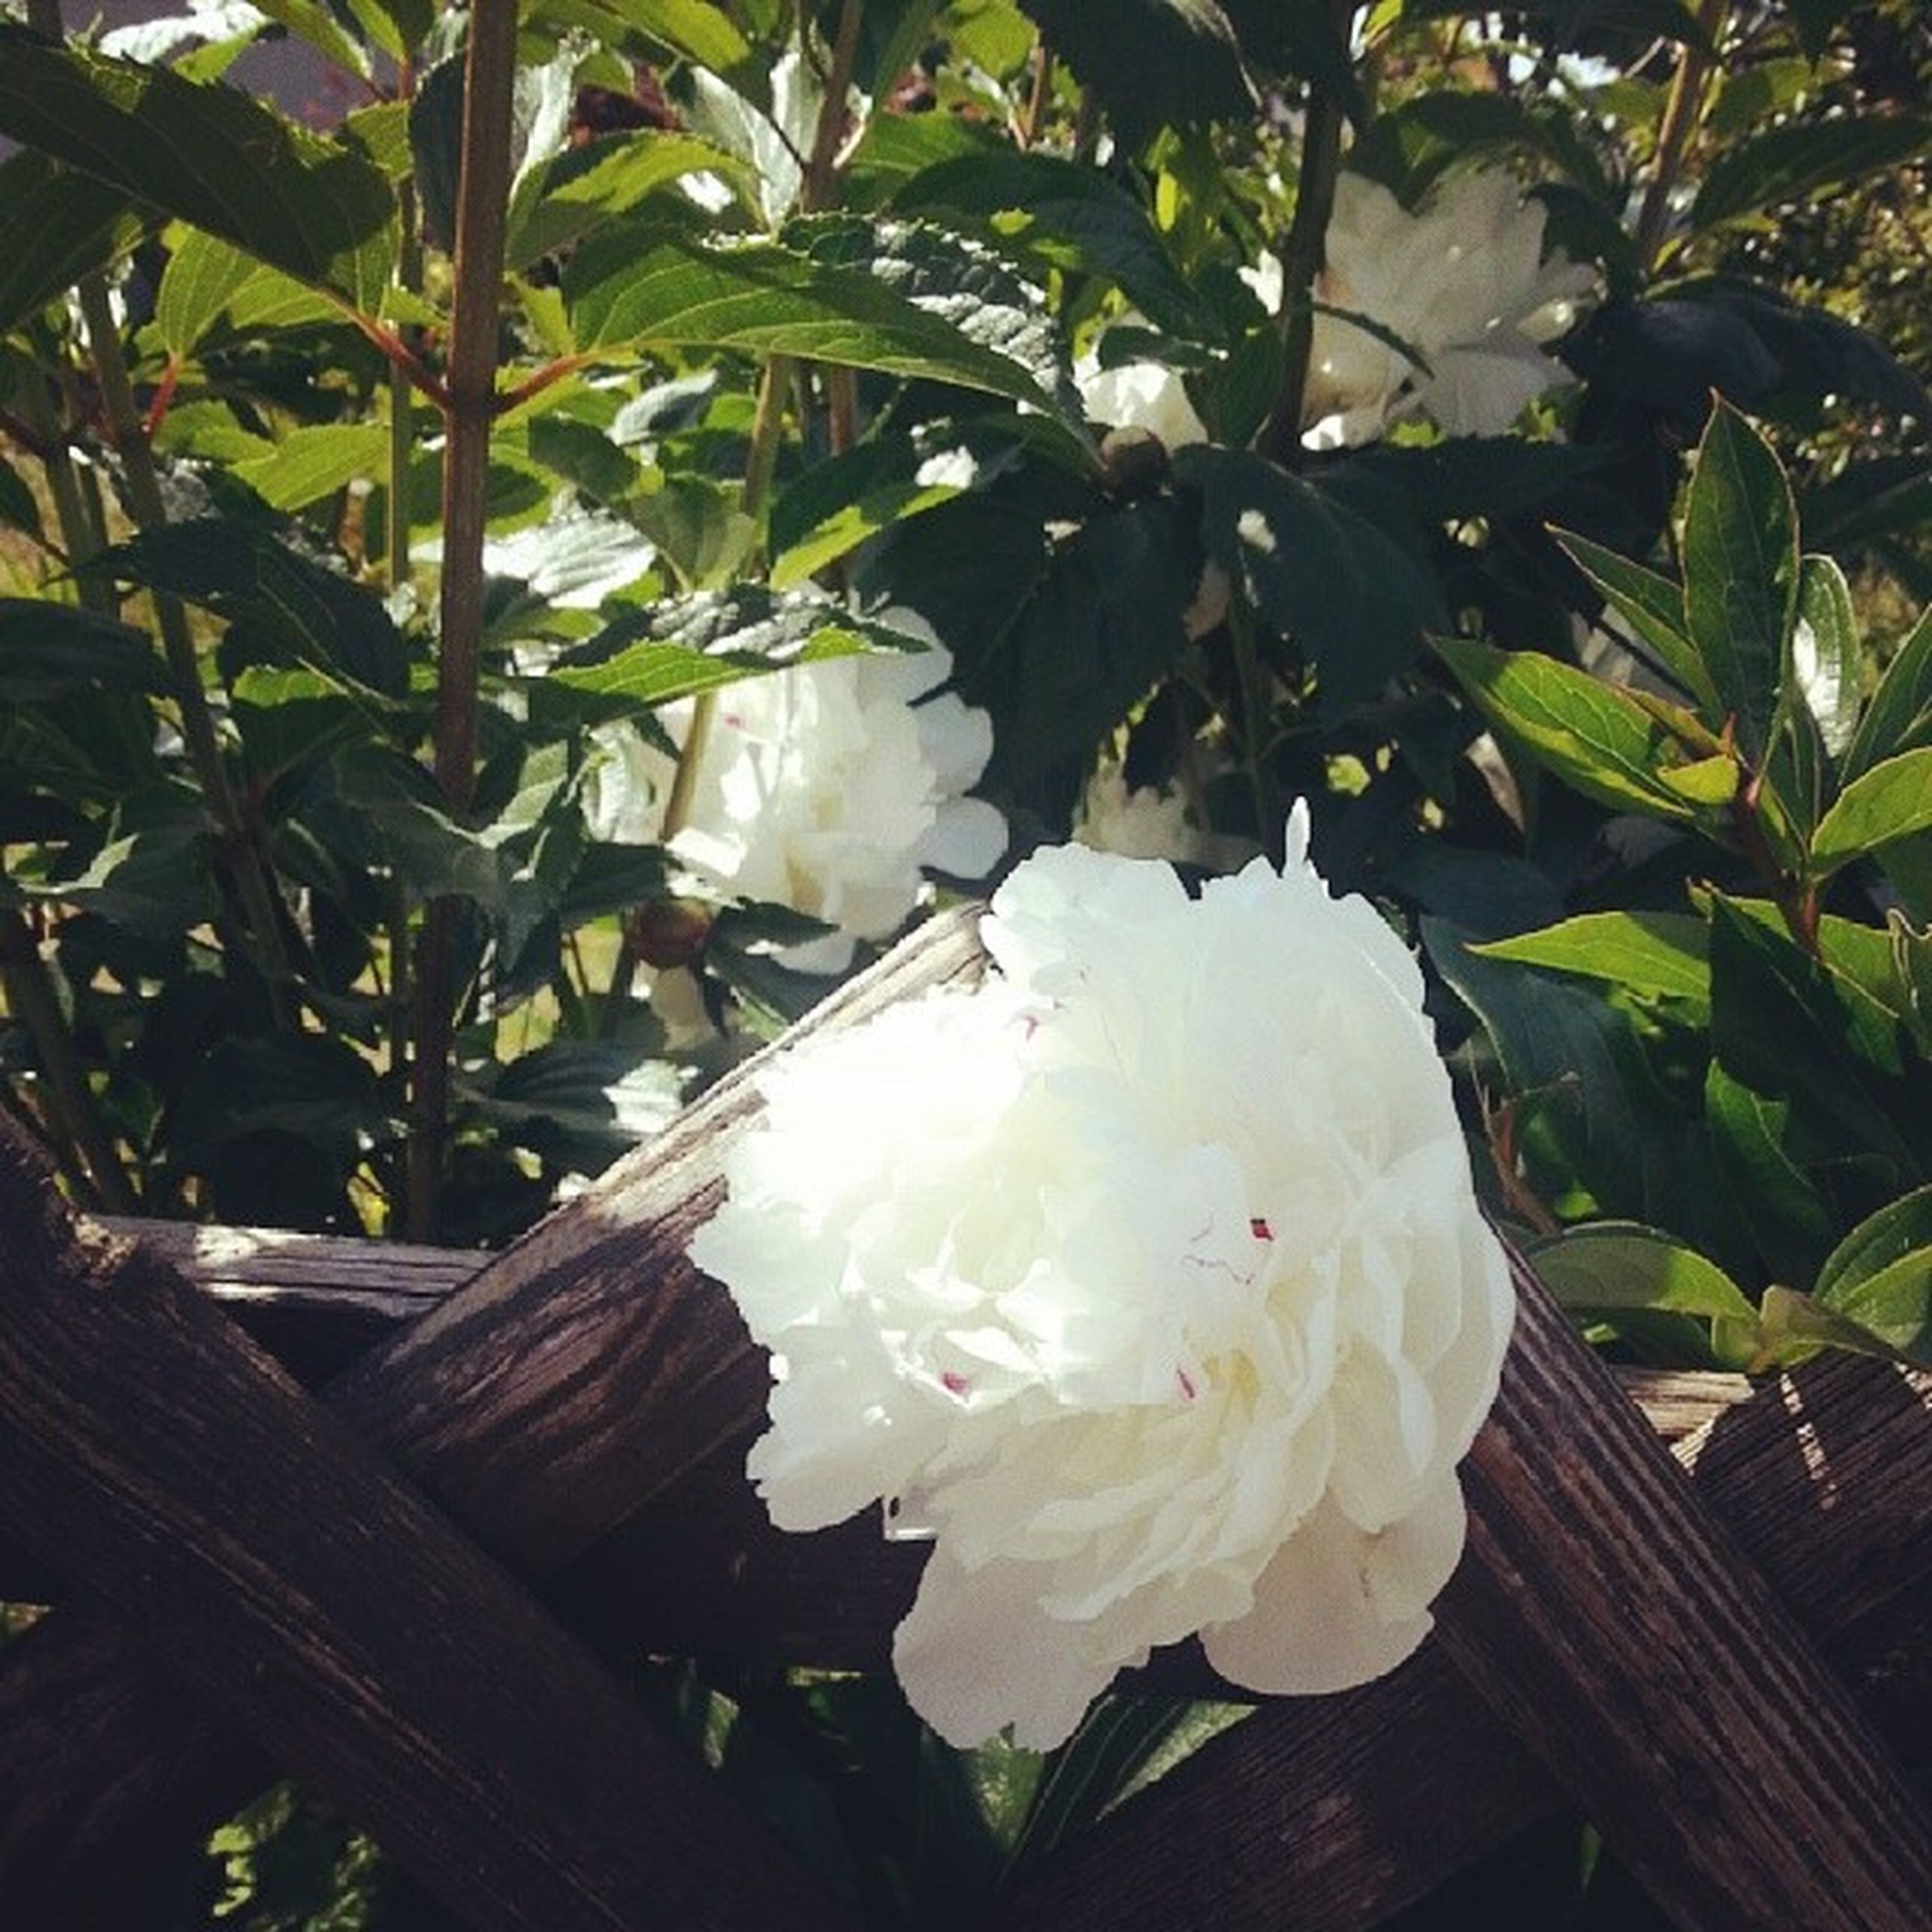 flower, freshness, petal, growth, fragility, white color, leaf, flower head, beauty in nature, close-up, nature, plant, blooming, white, blossom, no people, rose - flower, in bloom, outdoors, day